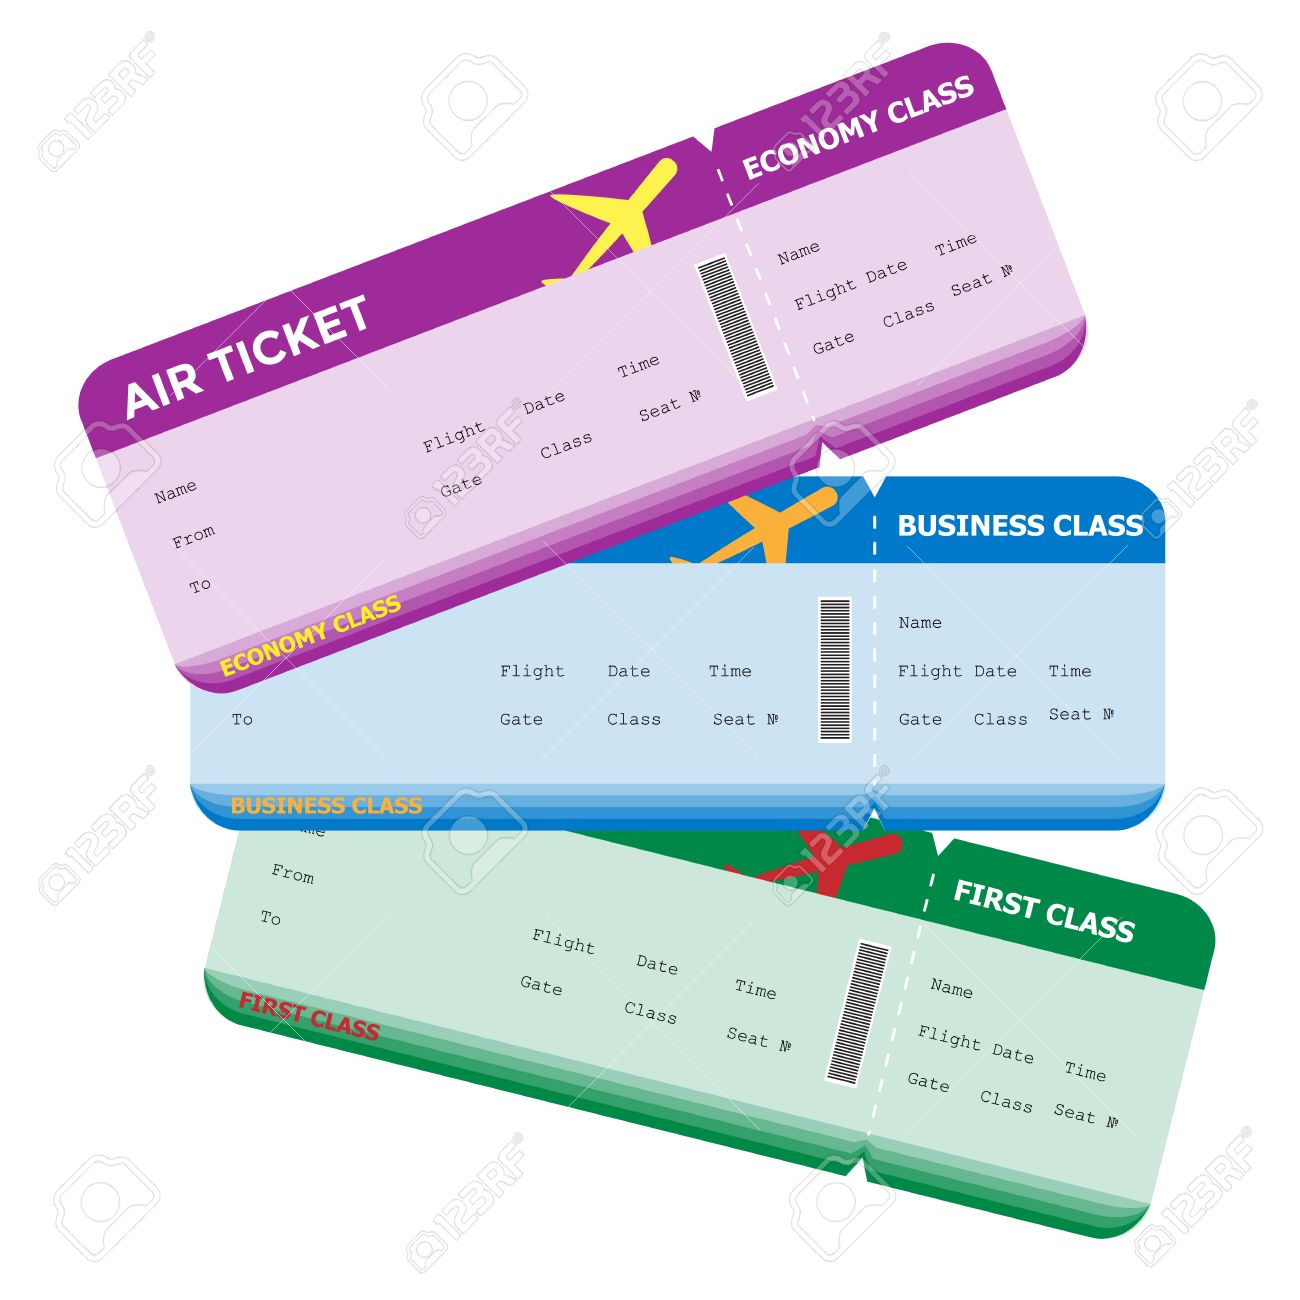 Clipart airplane ticket picture Boarding Pass Clipart | Free download best Boarding Pass Clipart on ... picture